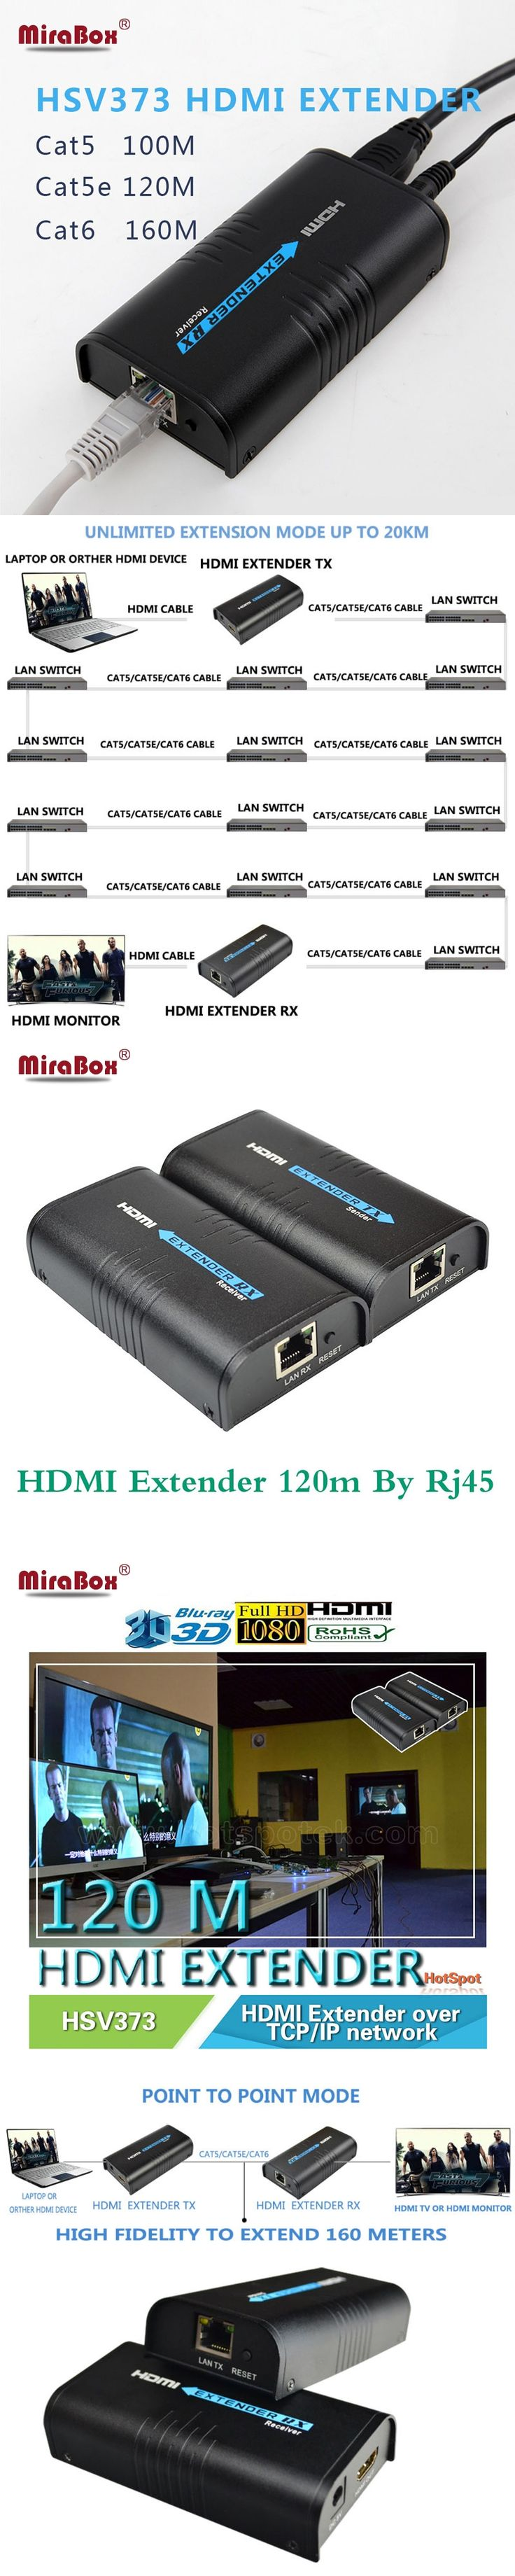 Mirabox HDMI repeater HDMI extender can extend 120m(393ft) by Rj45 cat5/cat5e/cat6 support 1080P can work like HDMI splitter